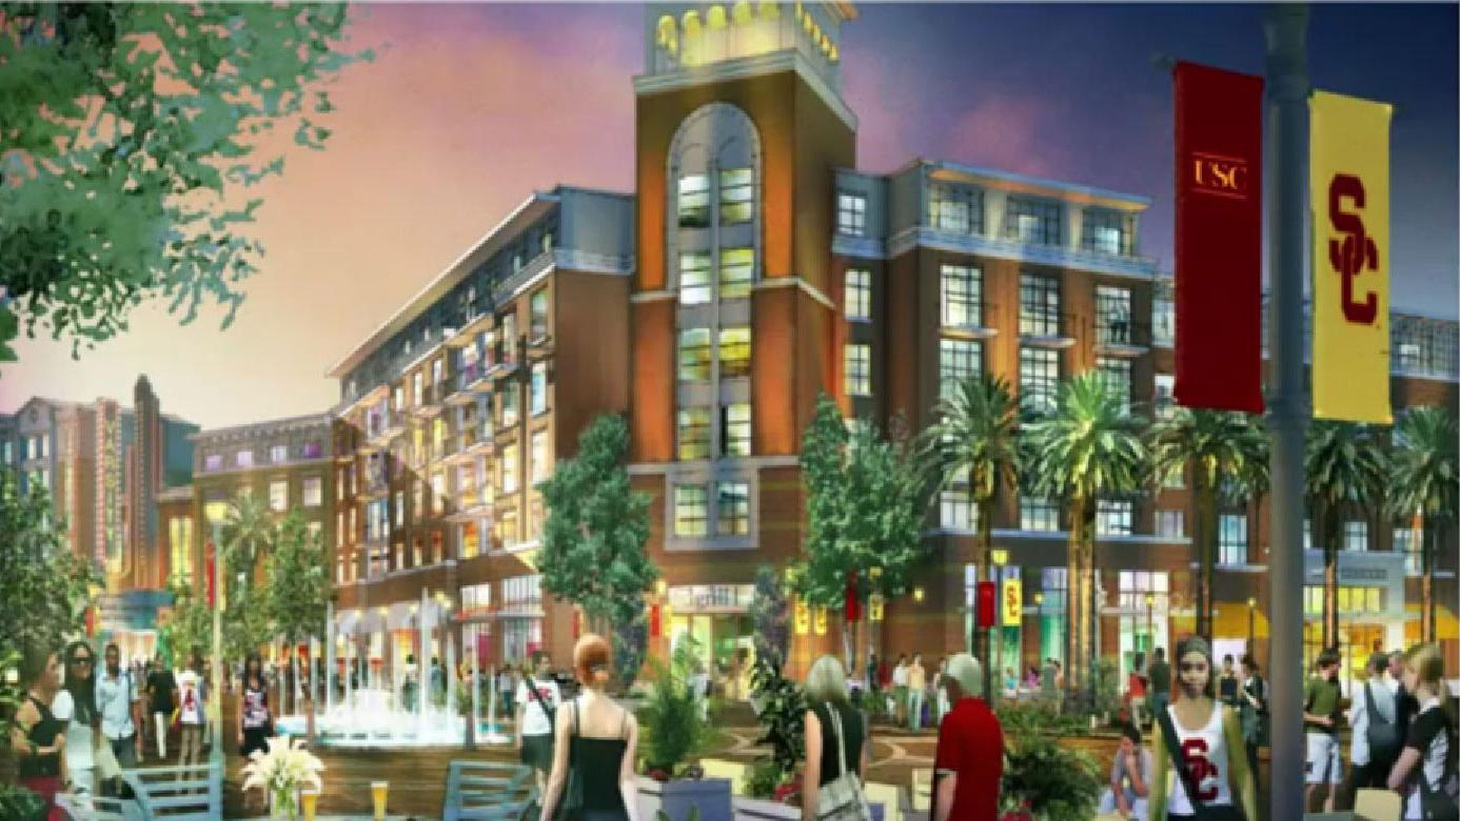 USC is planning to develop 35 acres of eateries, shops, a multi-plex, faculty office space and student housing. Will gentrification push locals out or do them a favor?